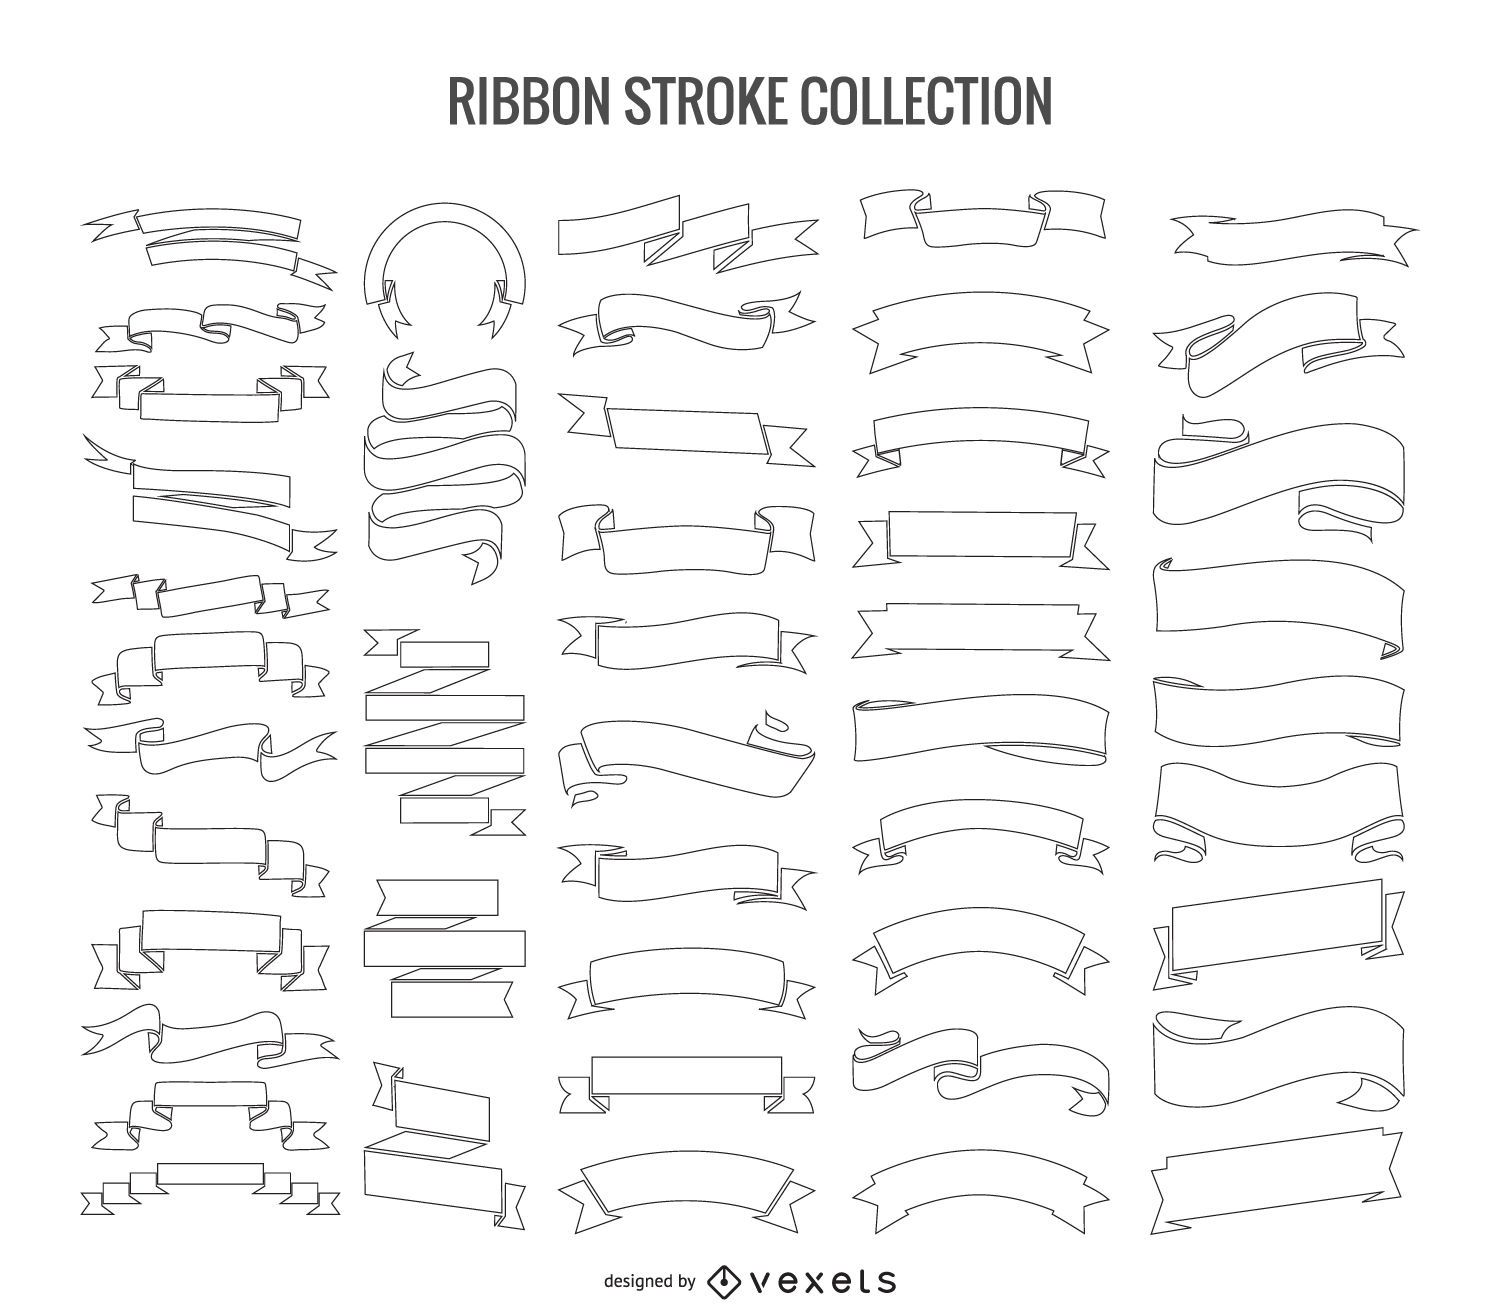 50 stroke ribbons collection